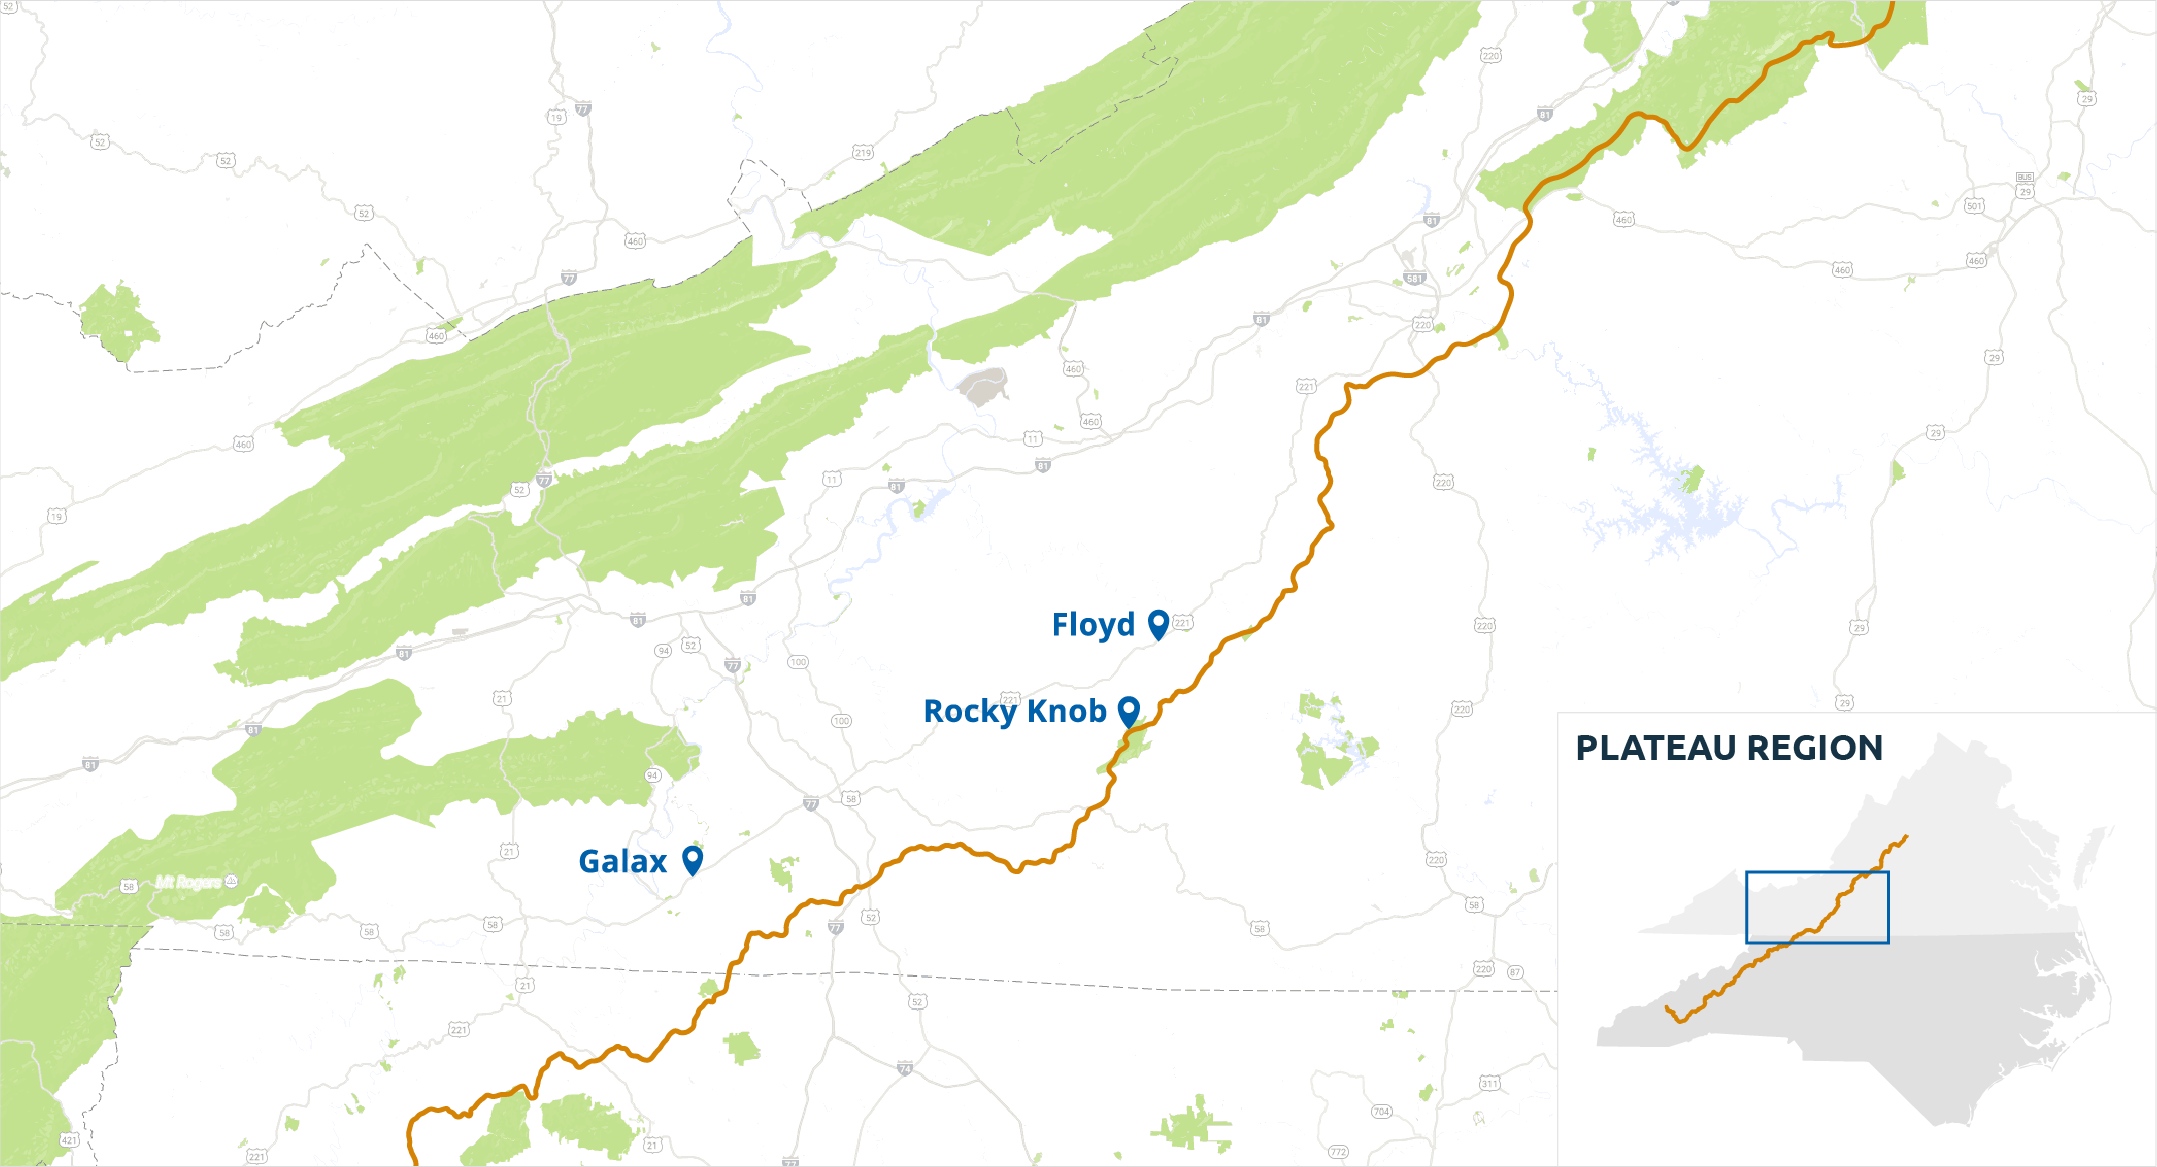 Plateau Region - Blue Ridge Parkway